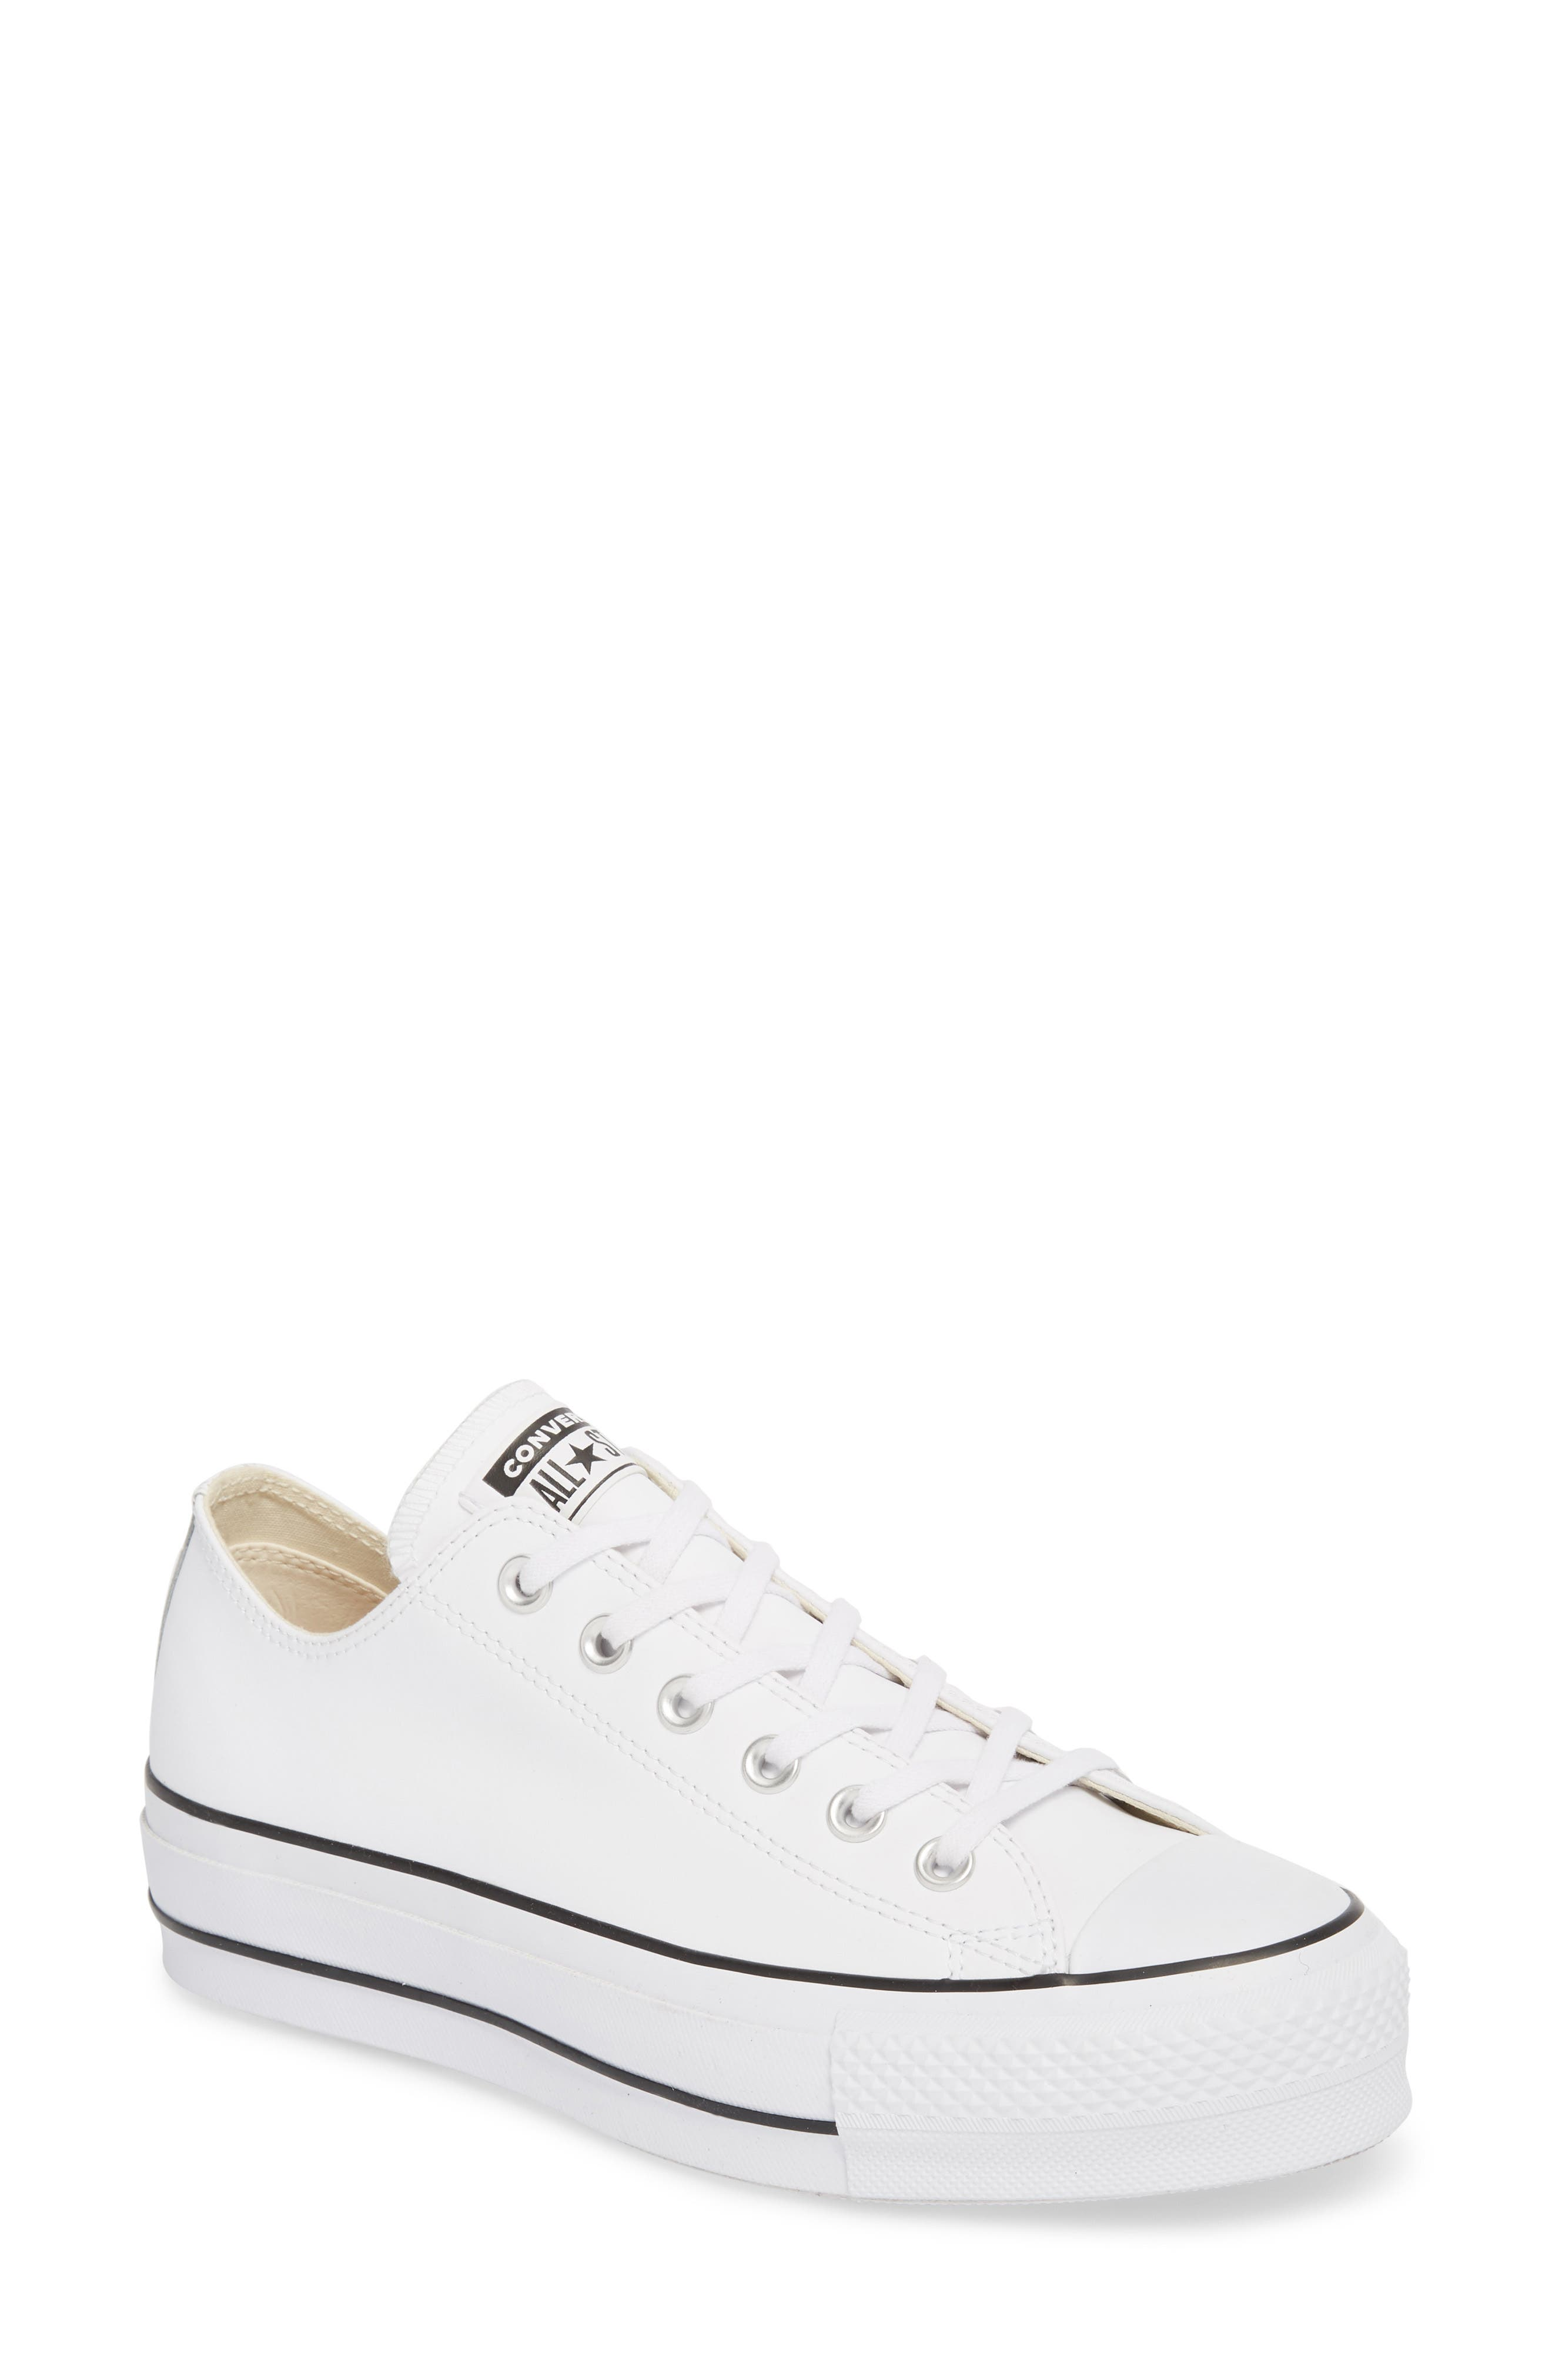 Chuck Taylor<sup>®</sup> All Star<sup>®</sup> Platform Sneaker,                             Main thumbnail 1, color,                             WHITE LEATHER